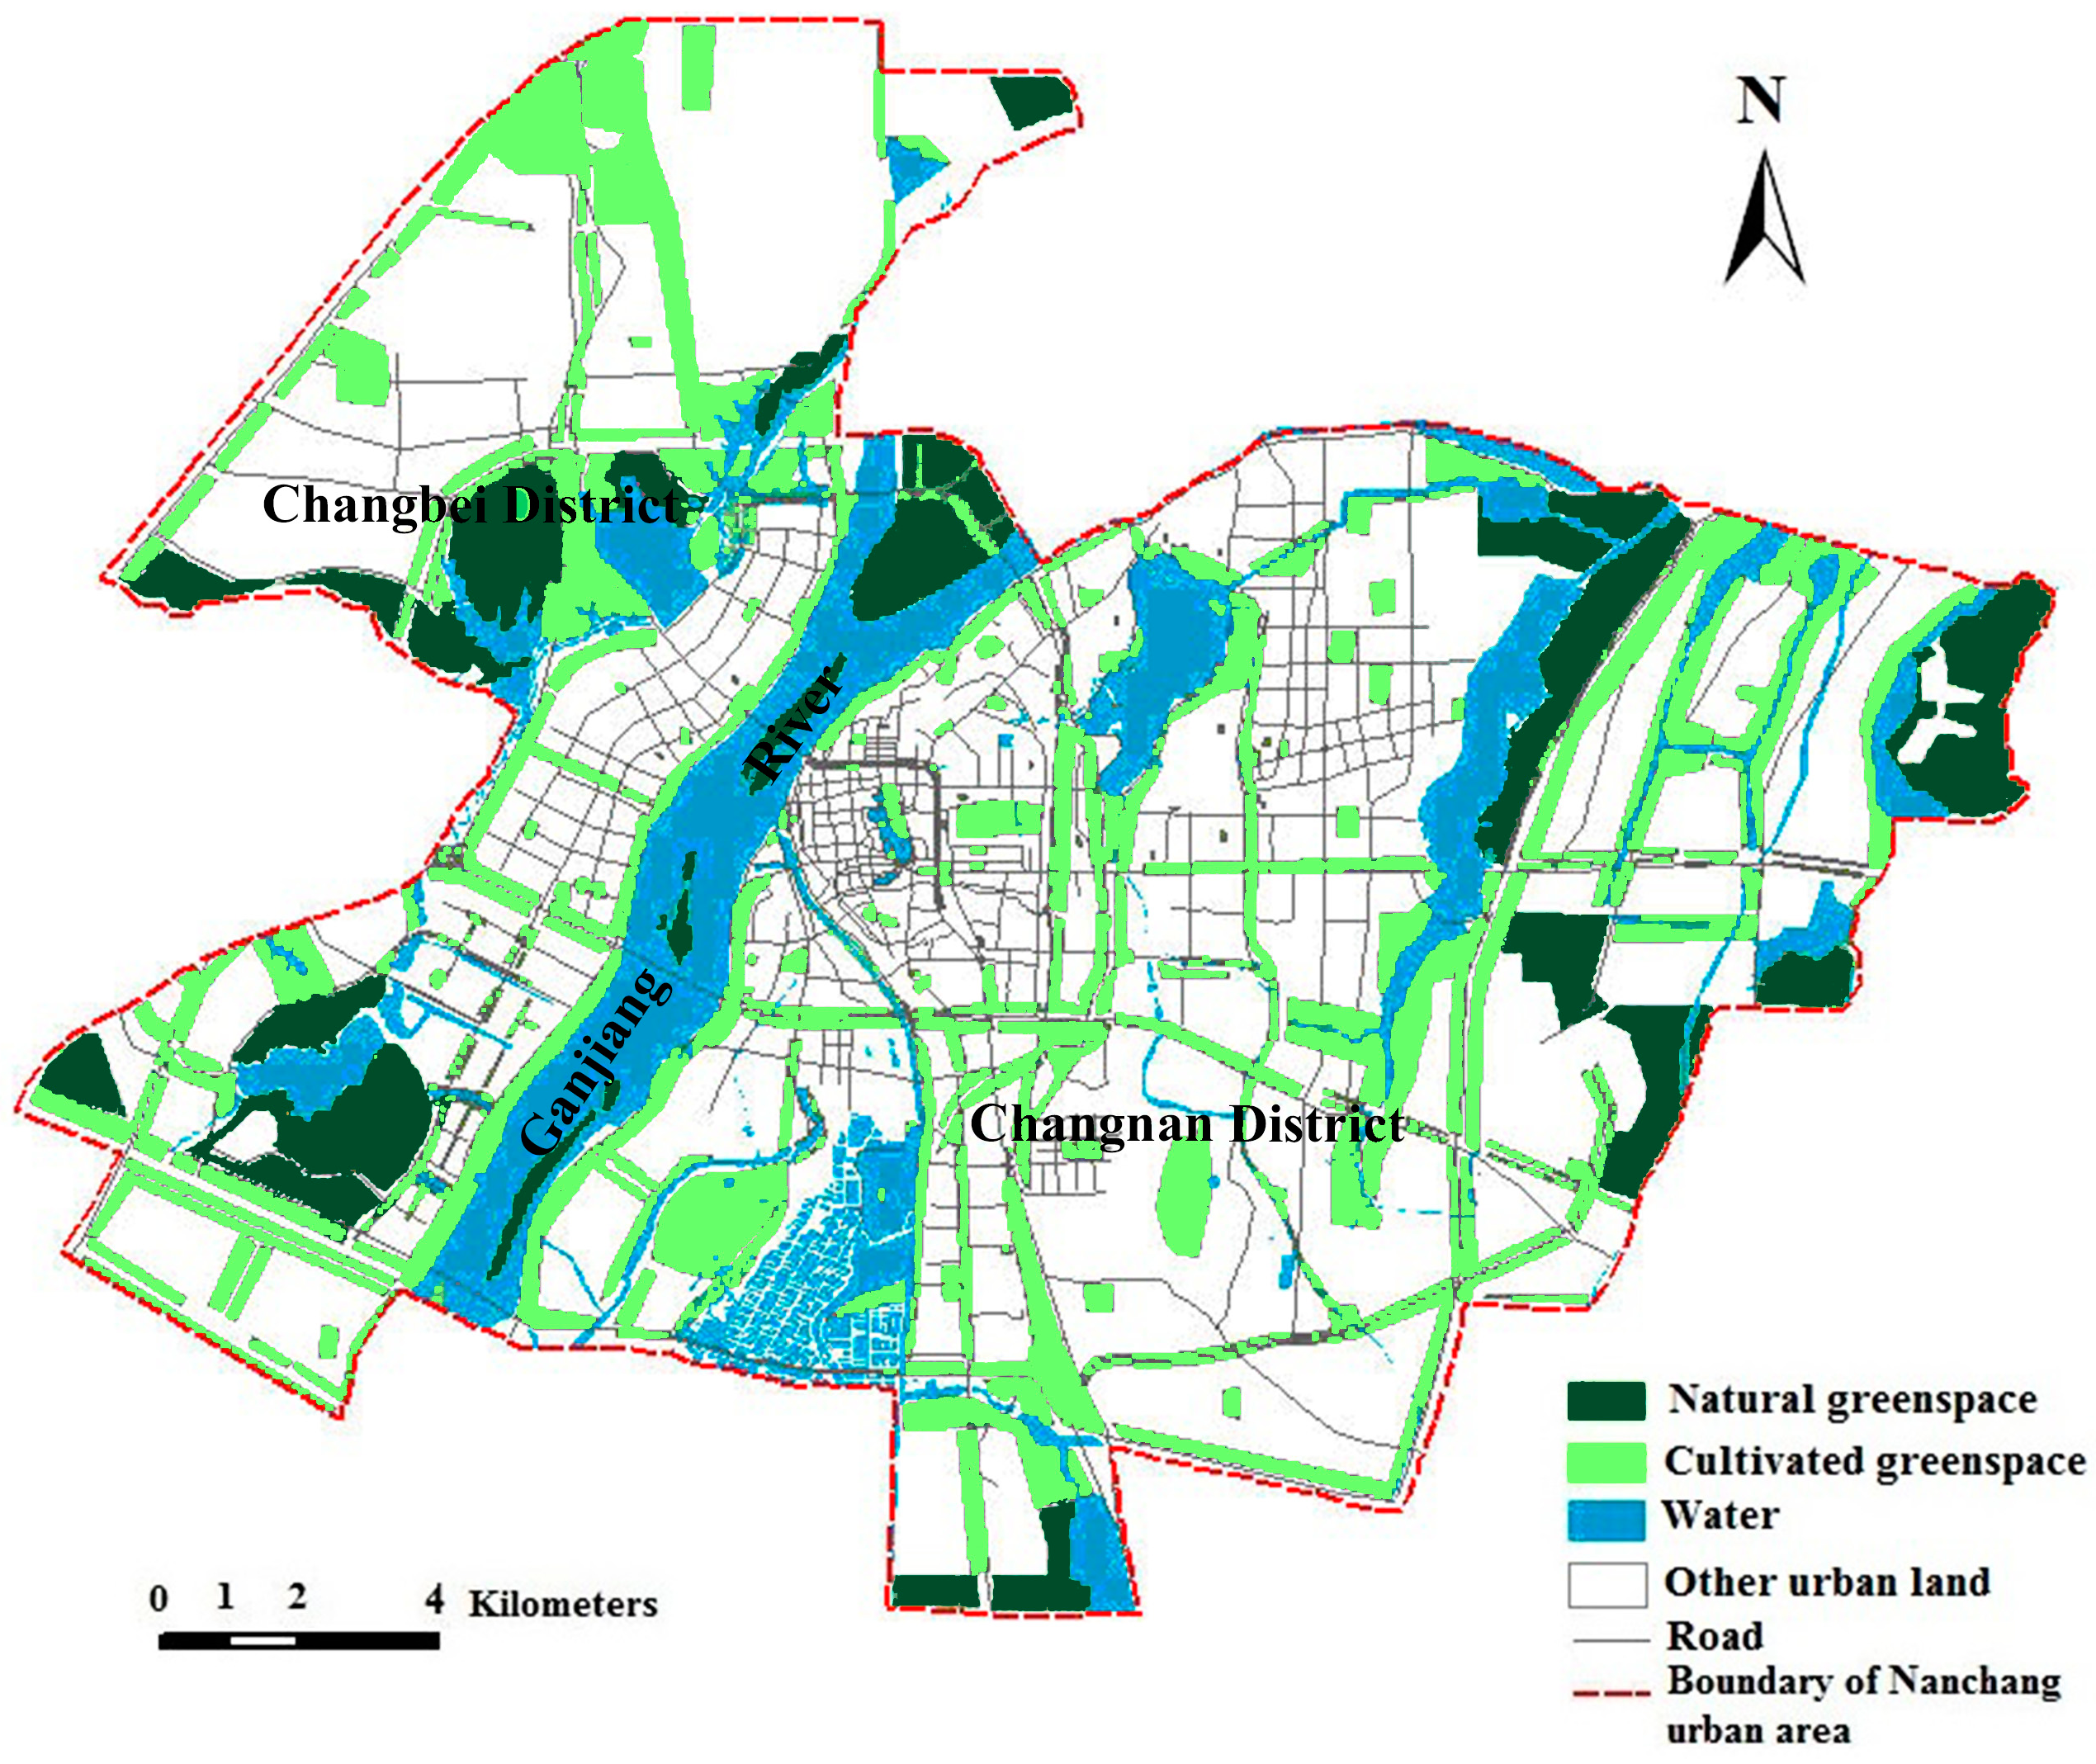 Network Map Example: Planning Of Green Space